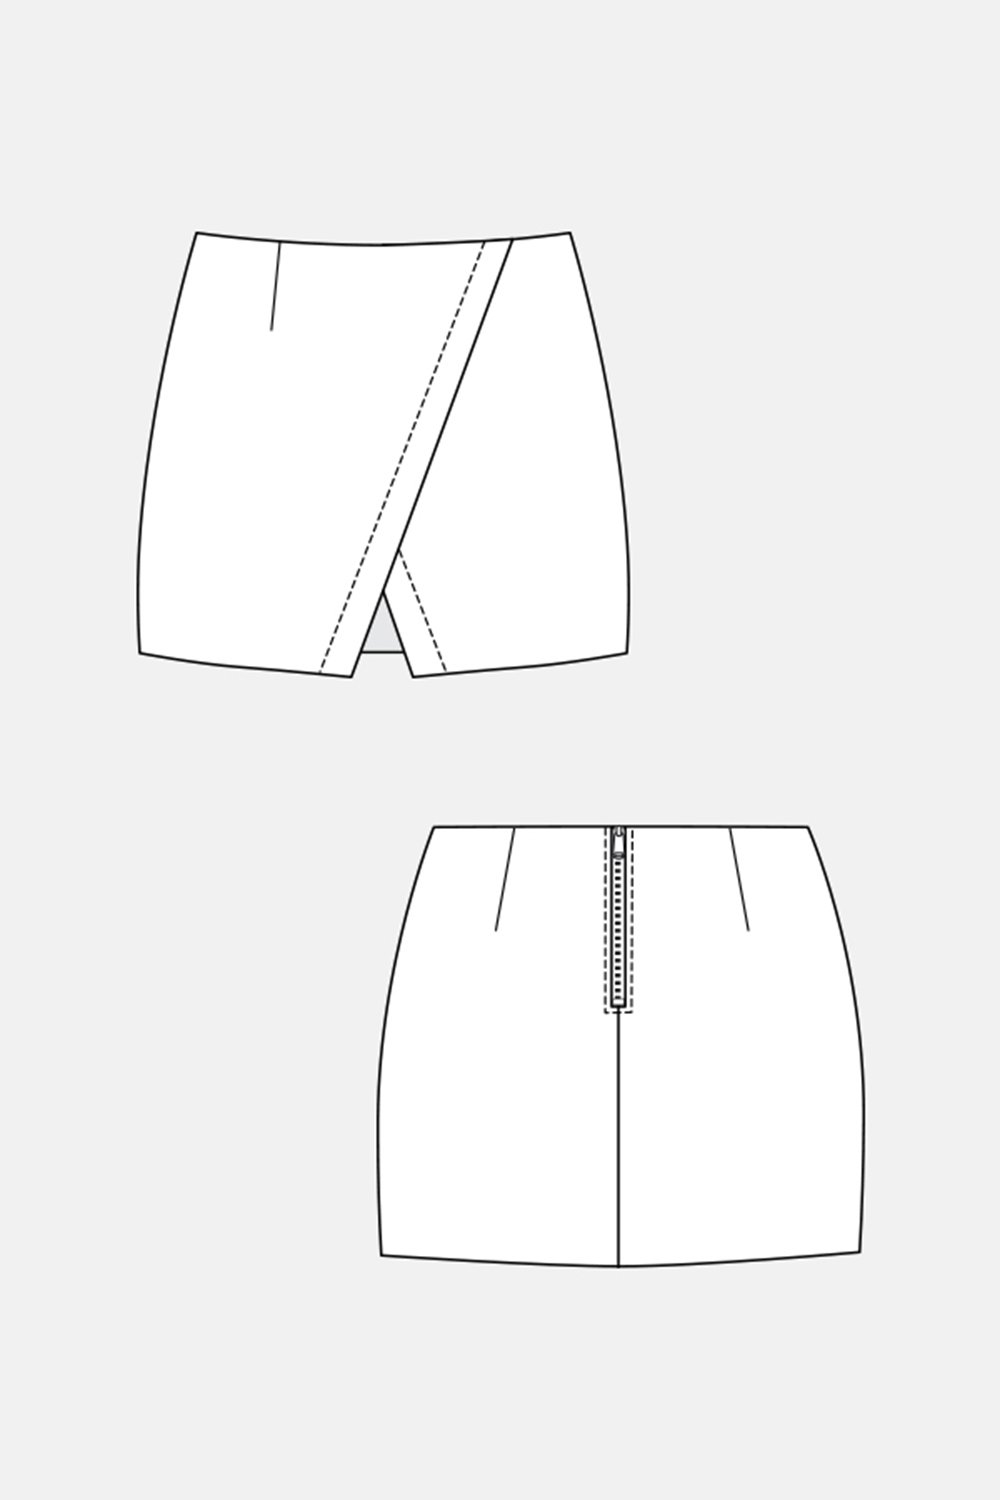 Named Clothing 04-045 NASCHA MINI SKIRT Downloadable Pattern